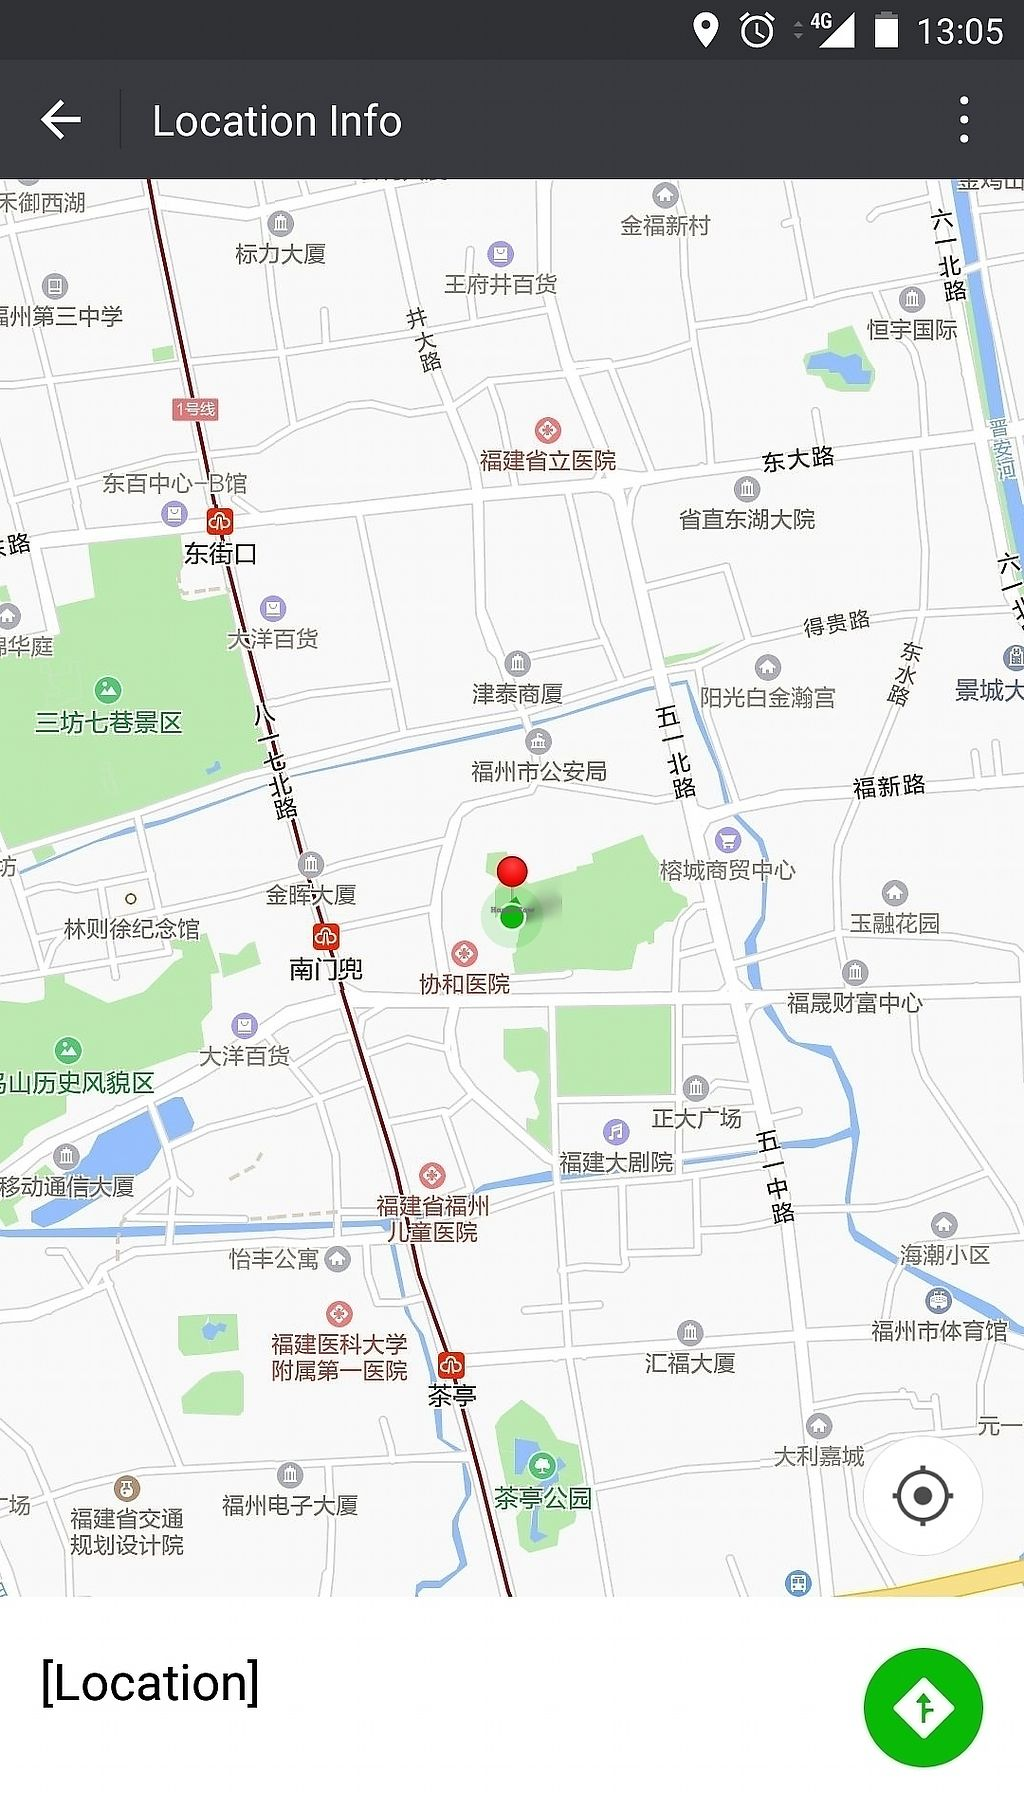 """Photo of Haozizai  by <a href=""""/members/profile/ultm8"""">ultm8</a> <br/>Map location <br/> March 21, 2018  - <a href='/contact/abuse/image/114896/373599'>Report</a>"""